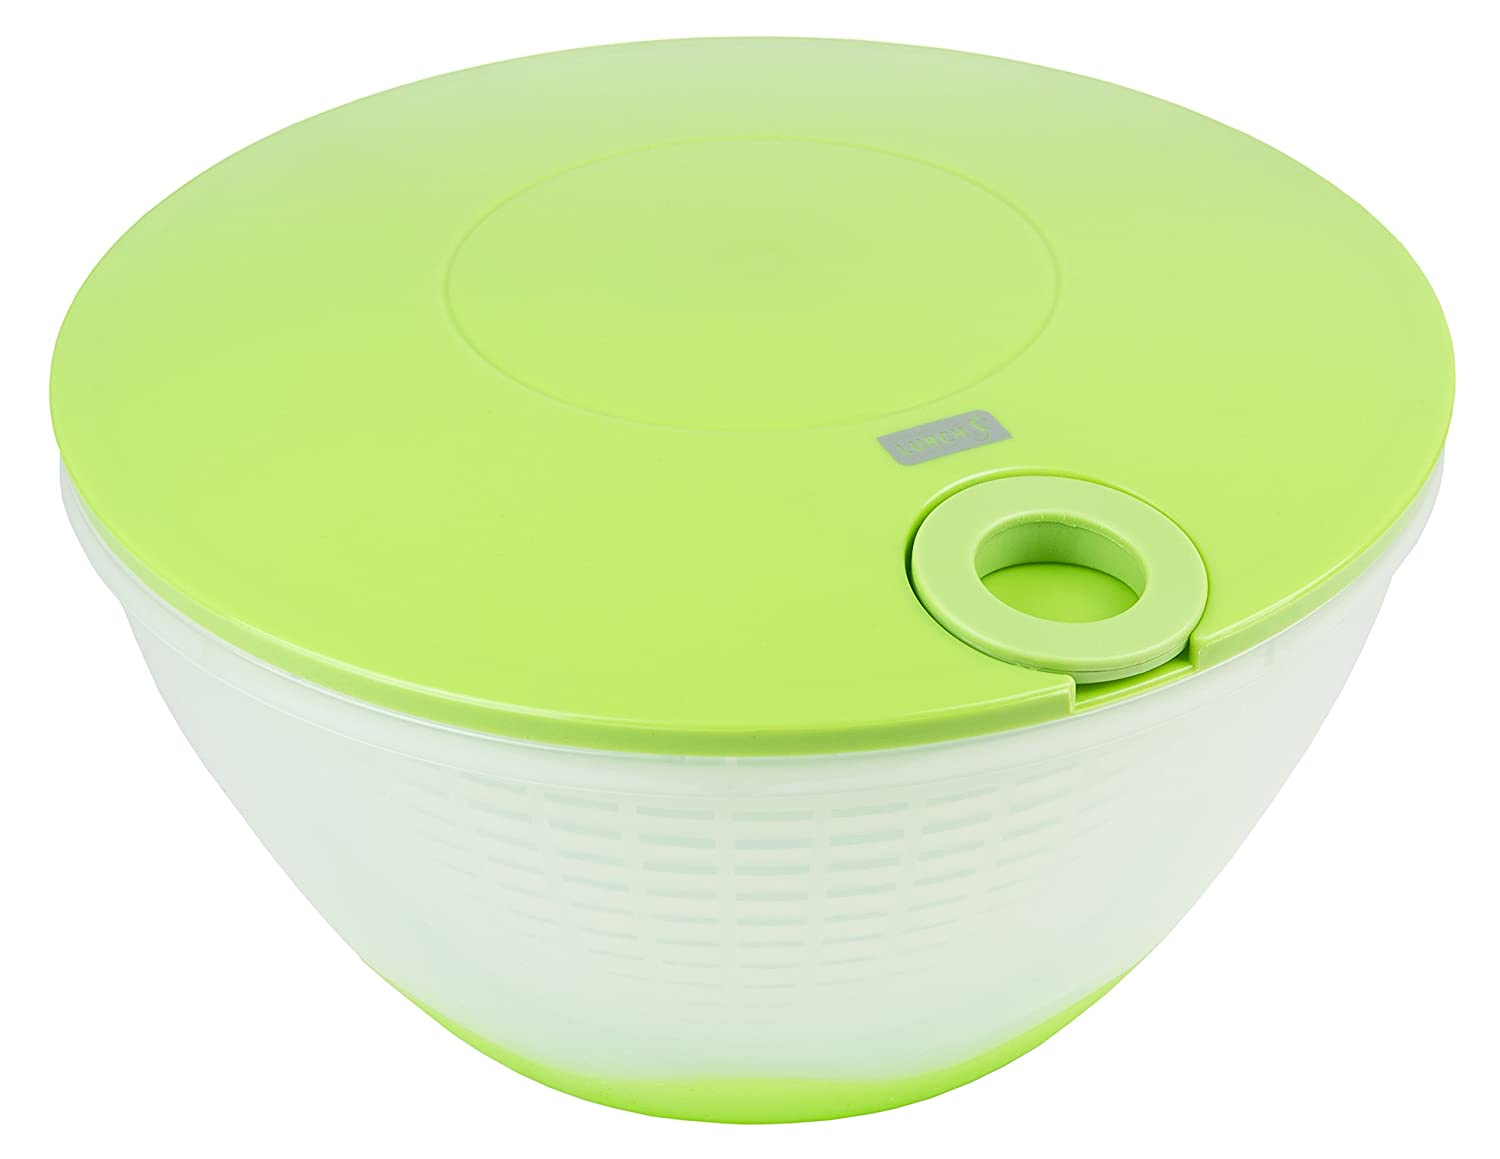 Lurch Germany Salad Spinner with Pull Cord, Green/Cream White 10224